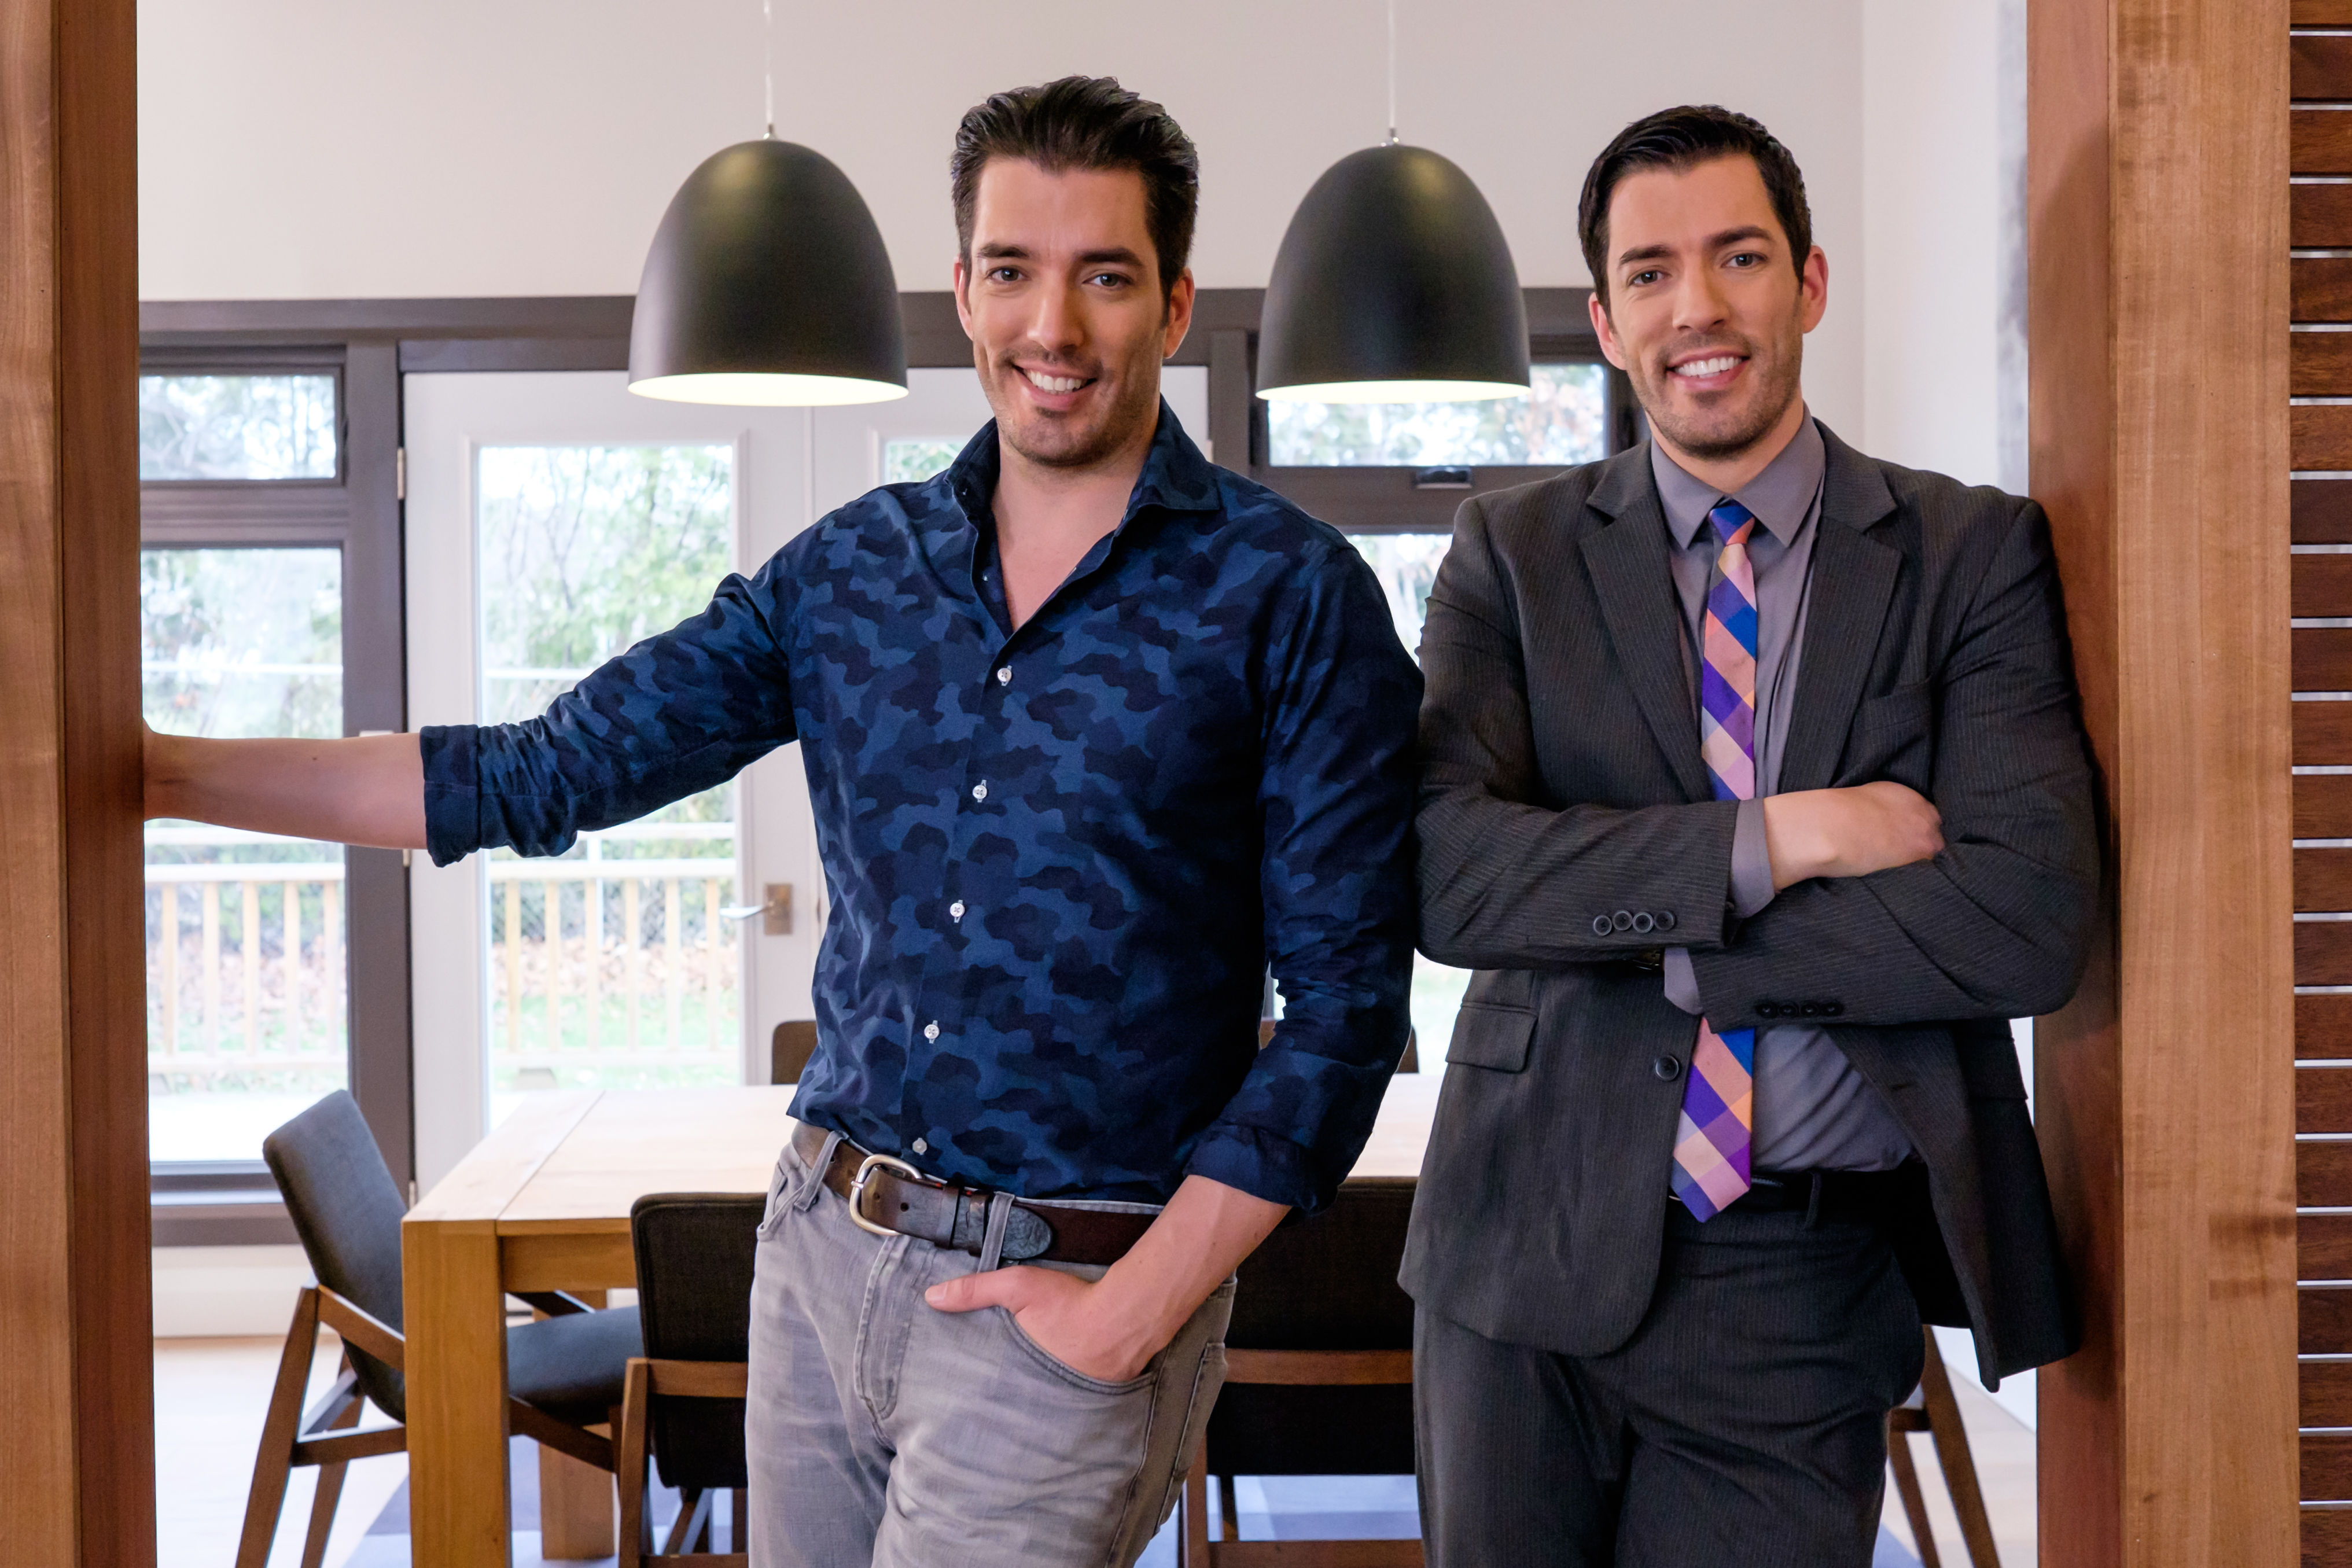 Property Brothers' Jonathan Scott Reveals Who Really Pays for the Renovations on Their HGTV Shows